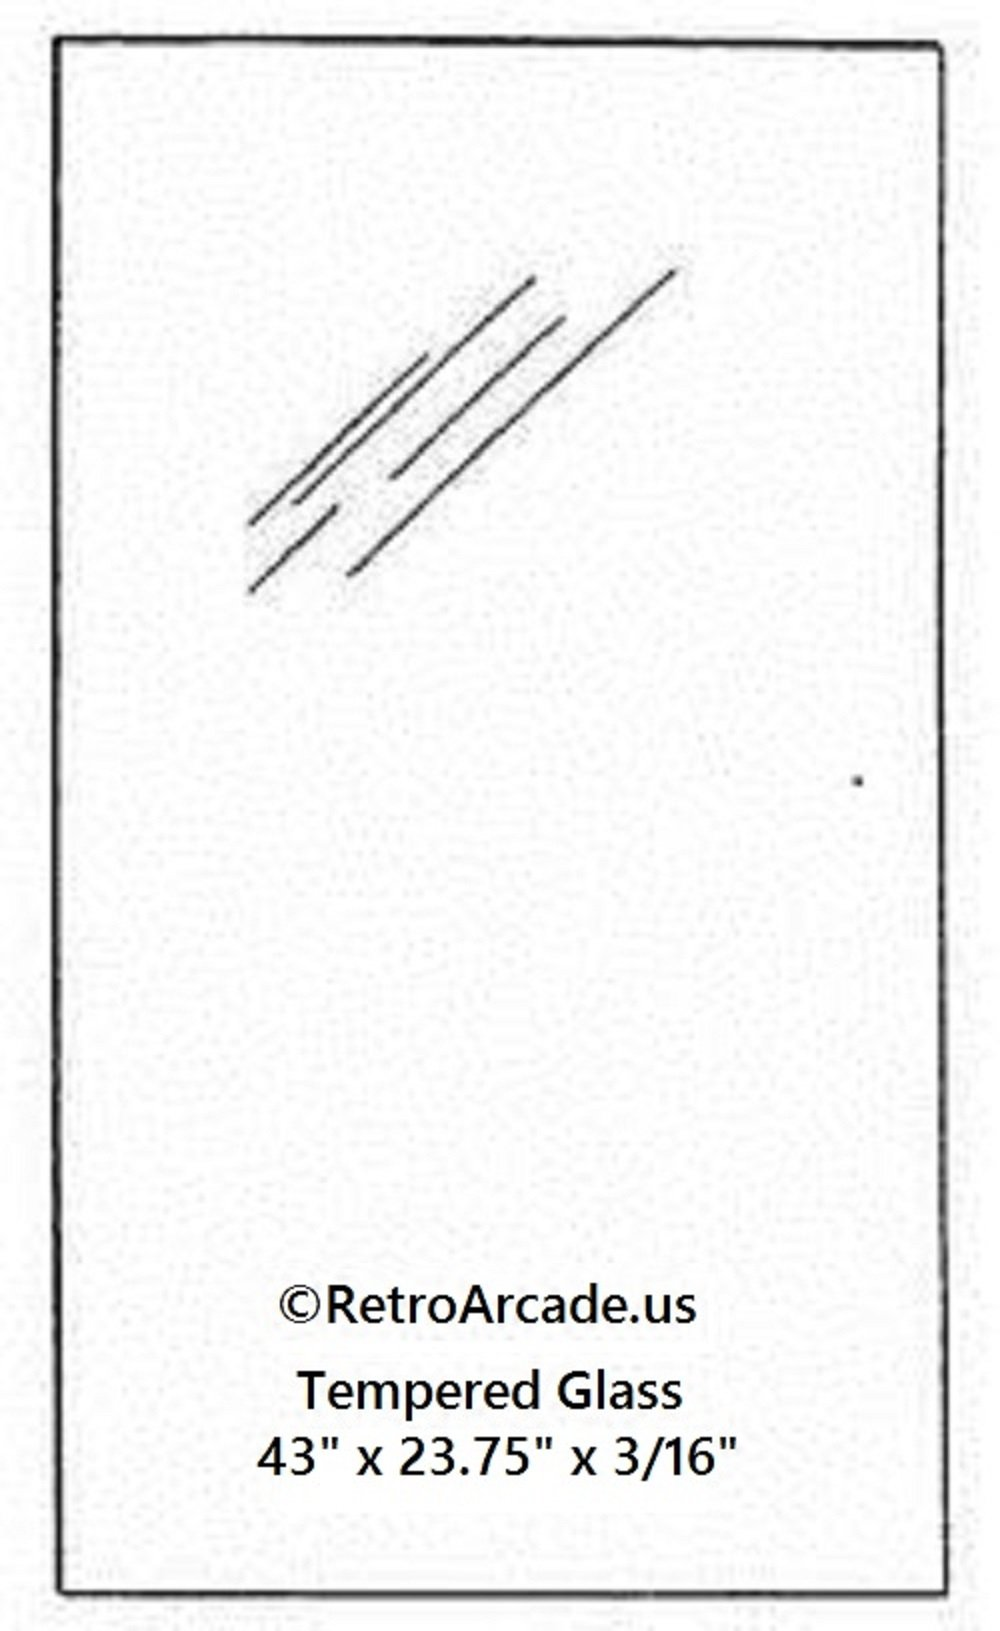 RetroArcade.us ra-pinball-glass-23 Replacement Pinball Glass widebody 23.75 x 43 x 0.185 inch, fits Williams, Stern, Bally, Midway, Game, Plan, Capcom